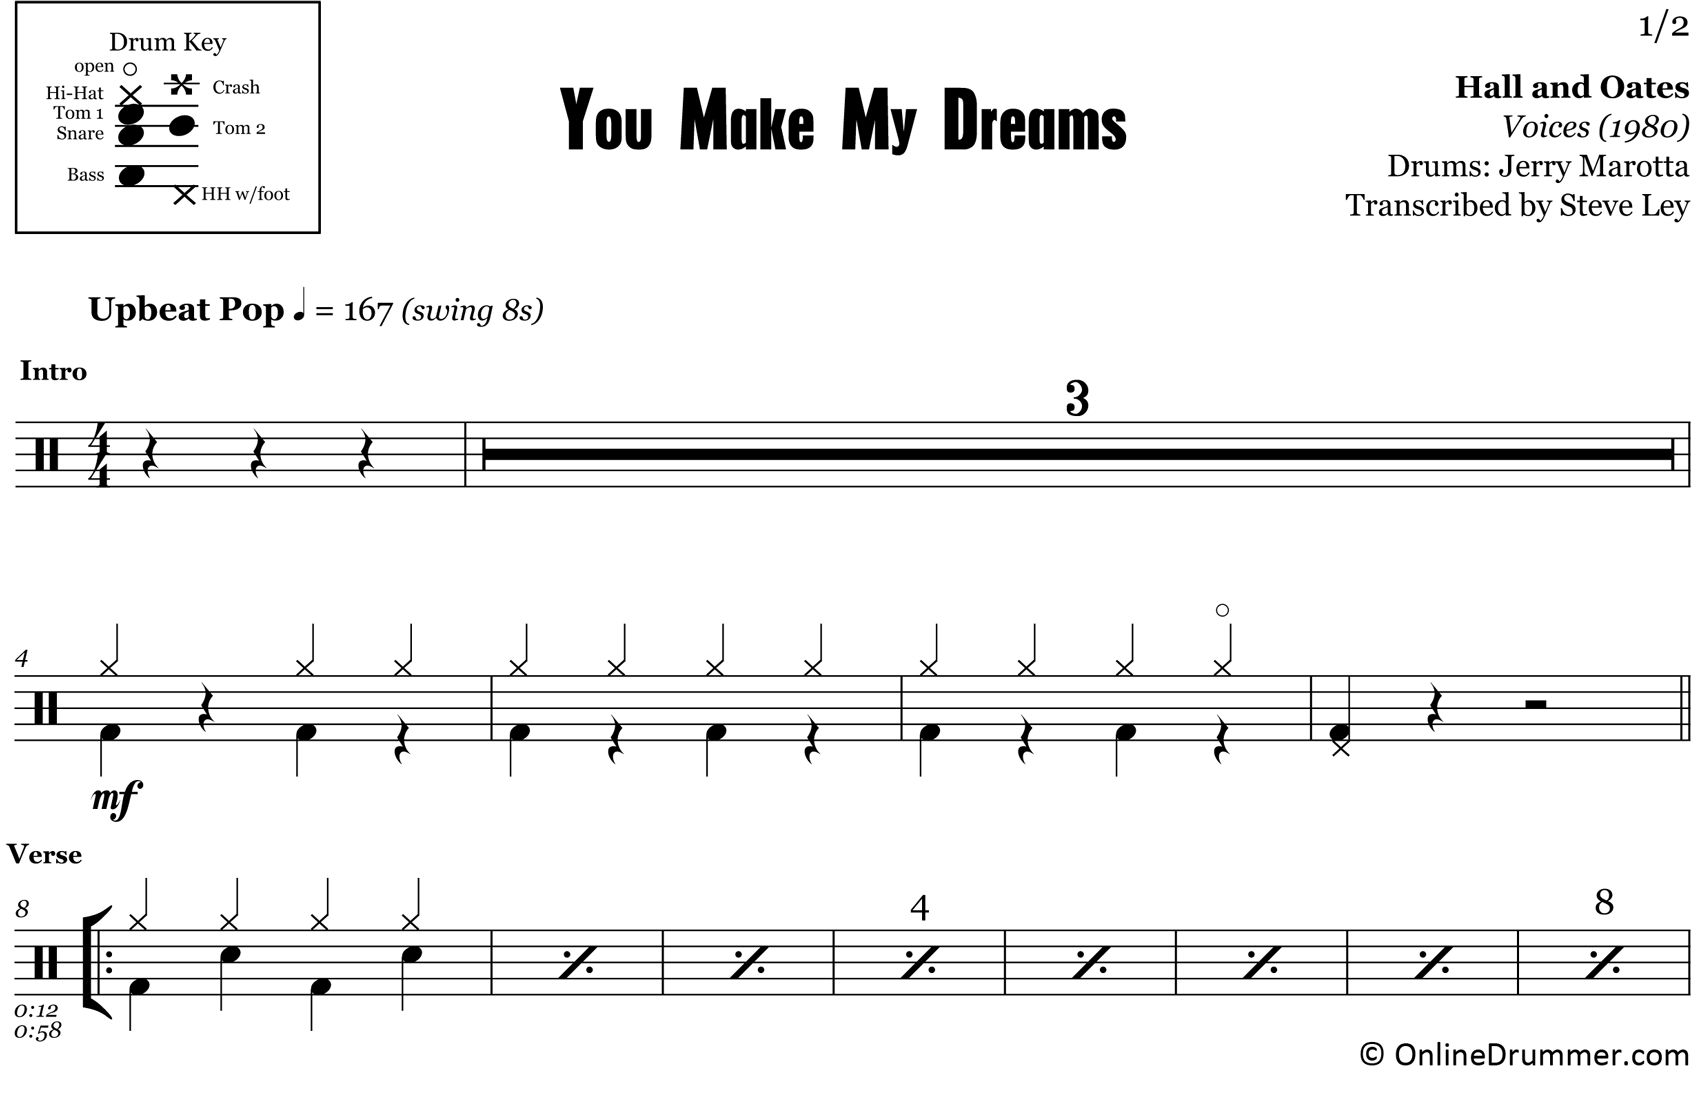 You Make My Dreams - Hal and Oates - Drum Sheet Music